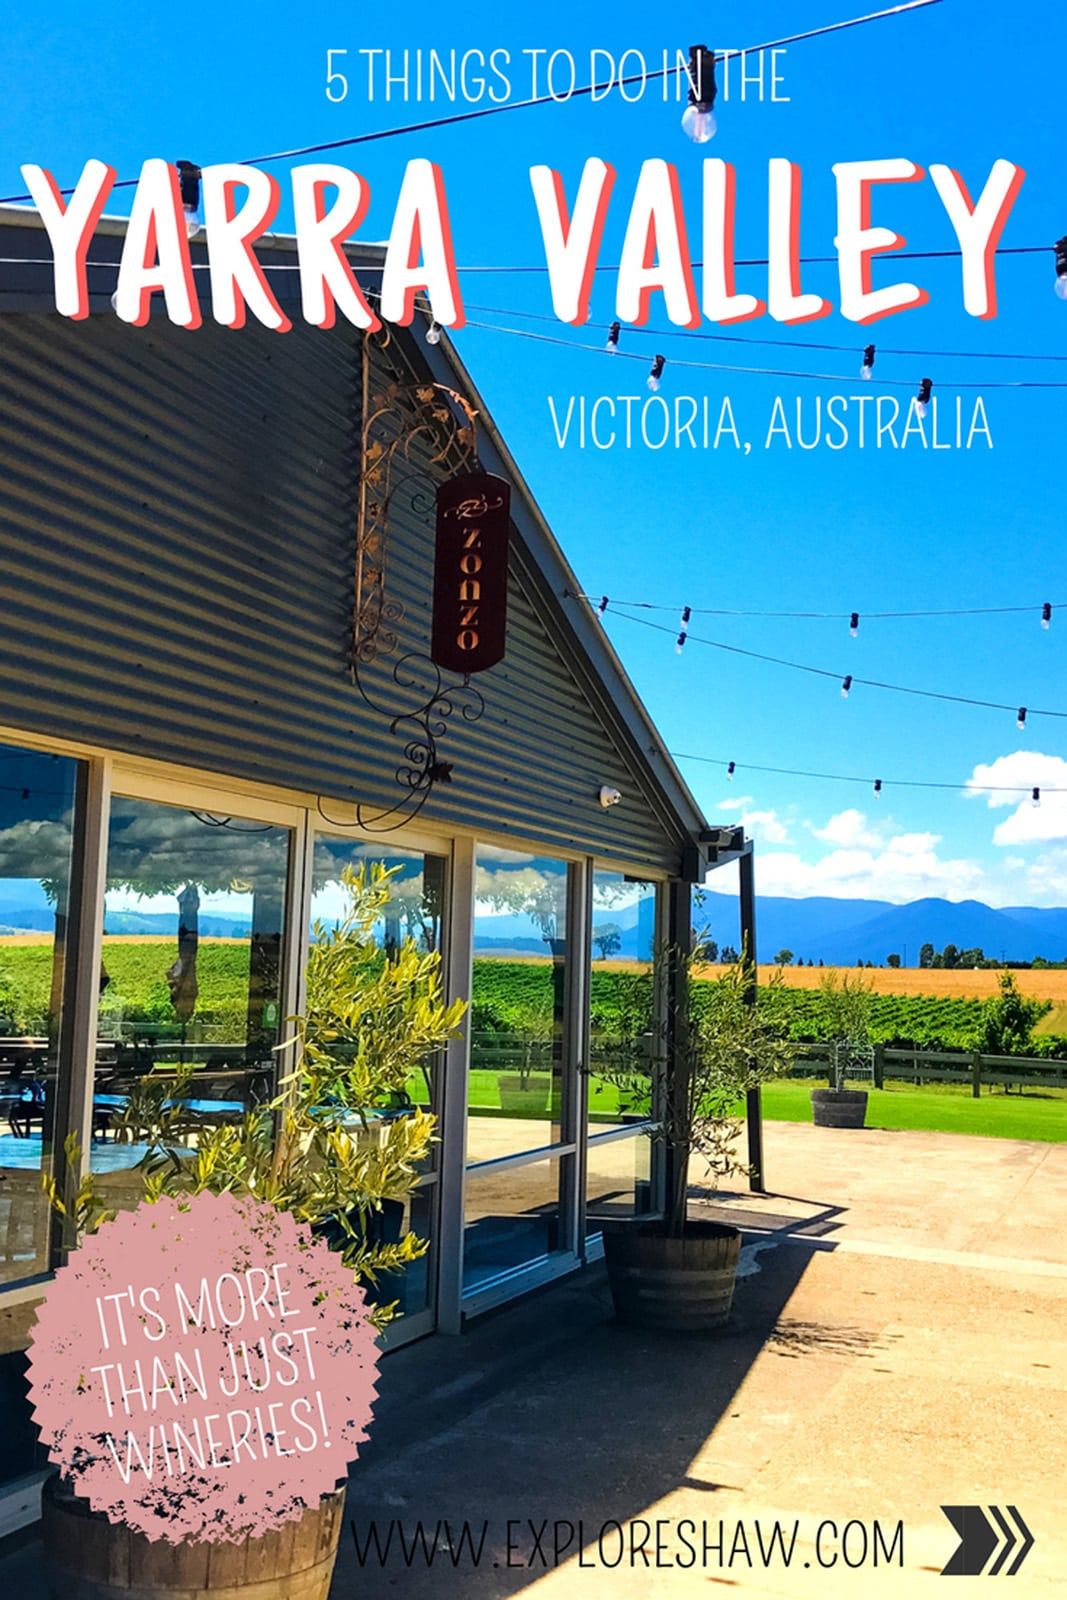 The Yarra Valley is world renowned for it's magnificent wineries, producing some of the best wine in Australia. But here are a few other things that you can't miss if you're visiting in the Yarra Valley.